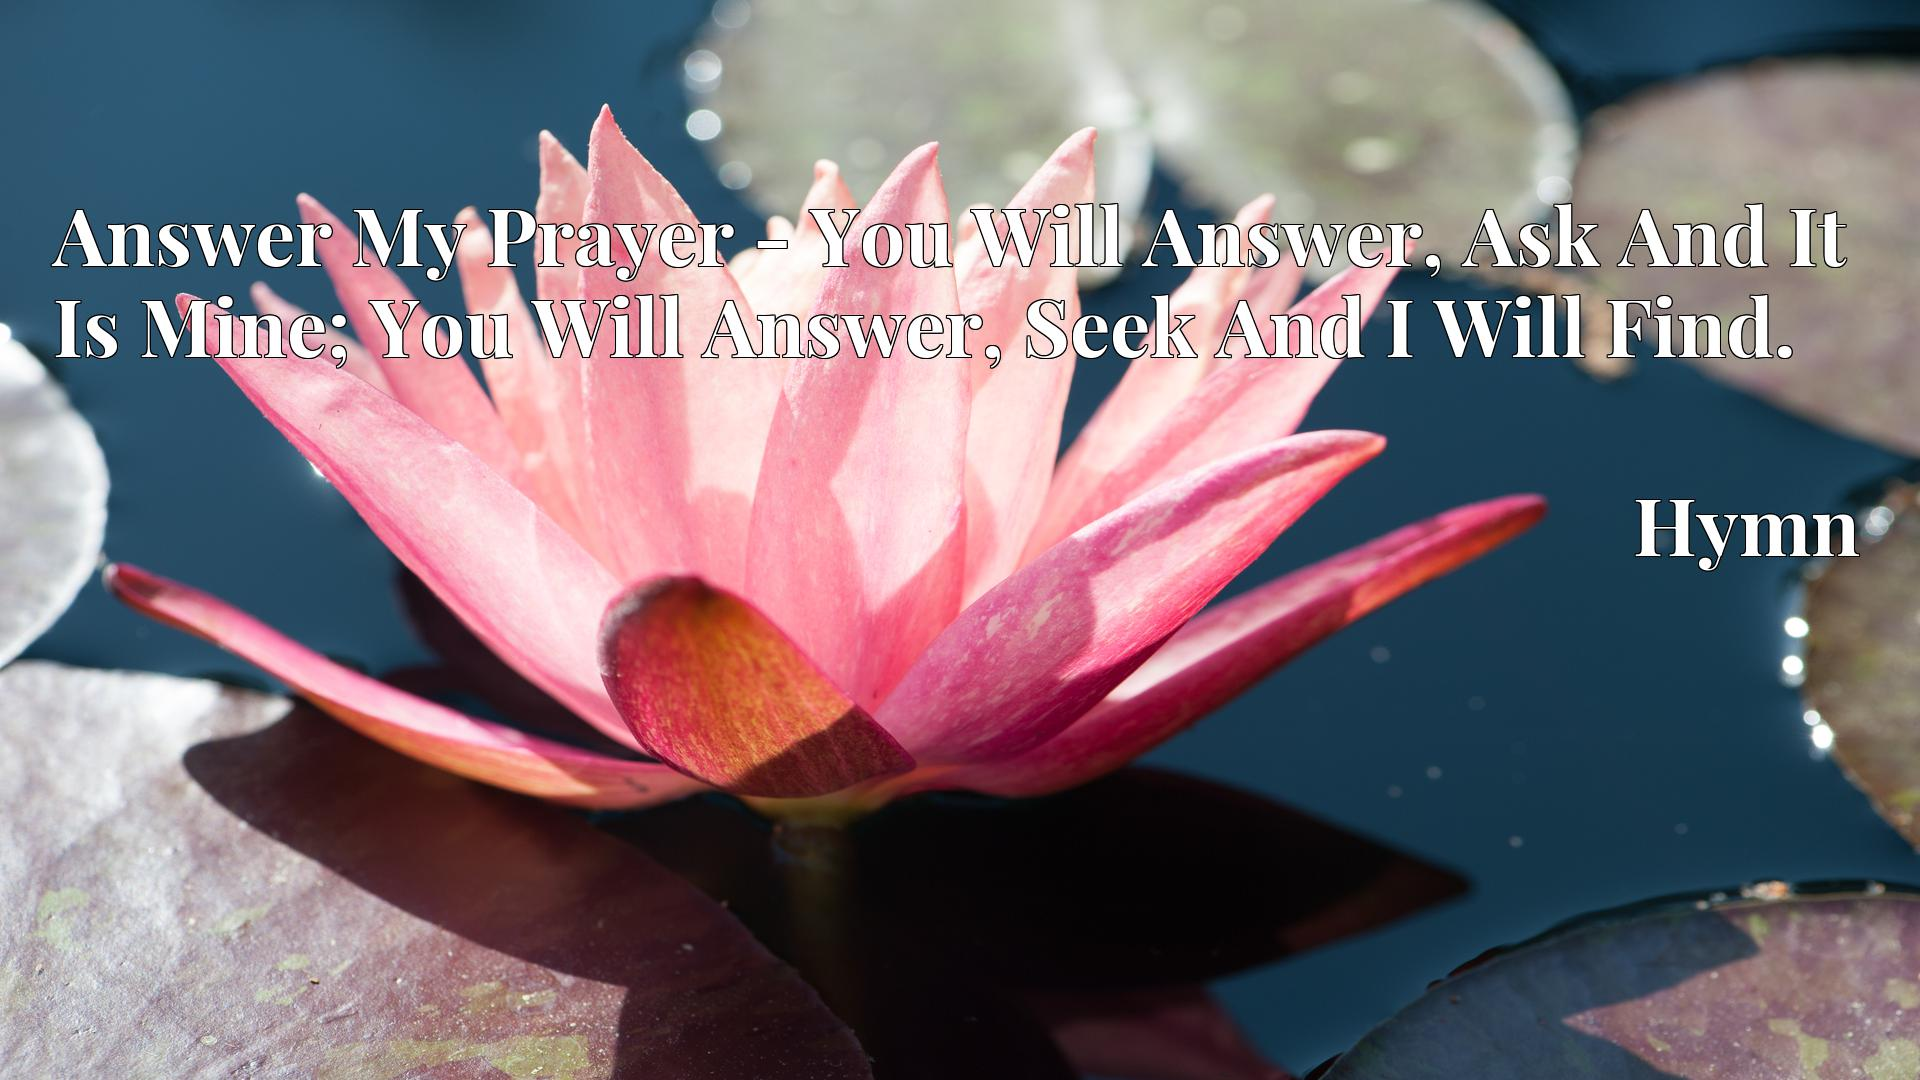 Answer My Prayer - You Will Answer, Ask And It Is Mine; You Will Answer, Seek And I Will Find. - Hymn